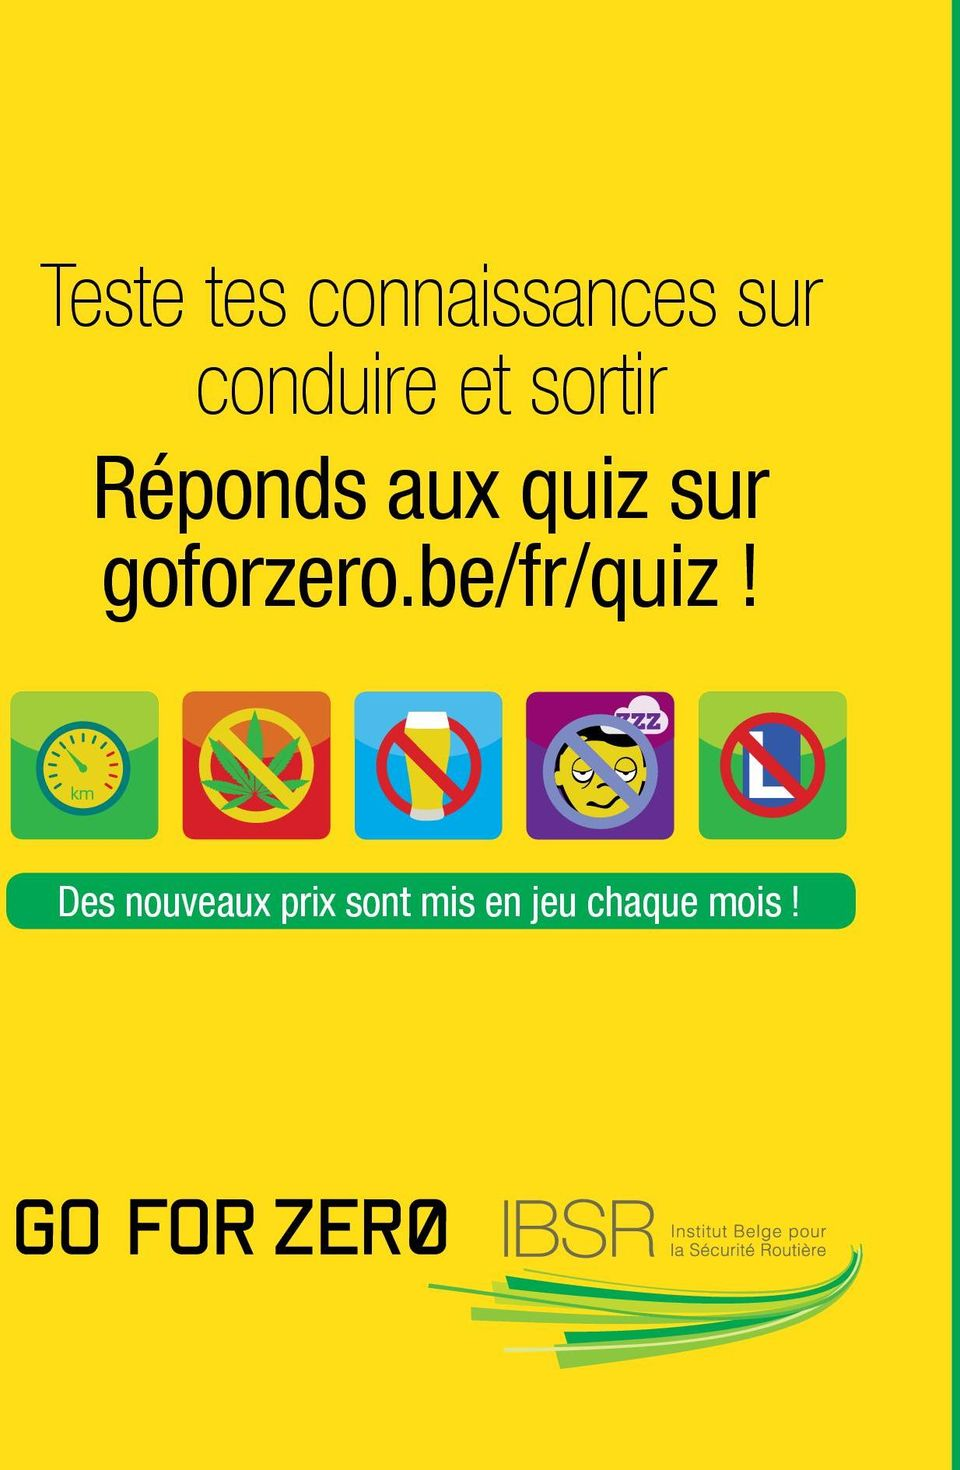 quiz sur goforzero.be/fr/quiz!